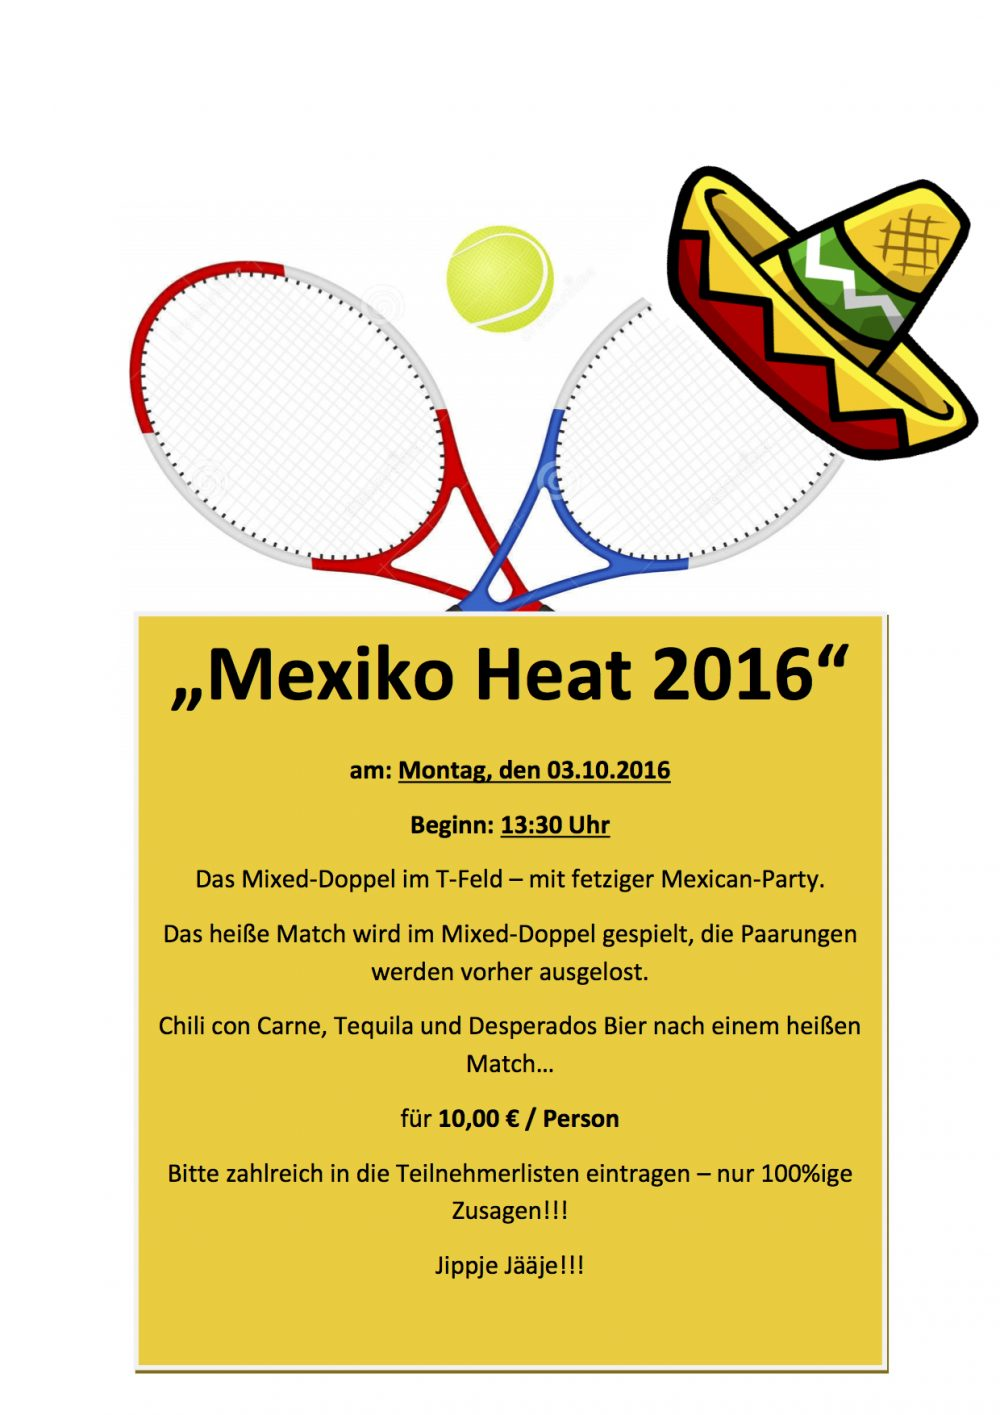 mexiko-heat-bild